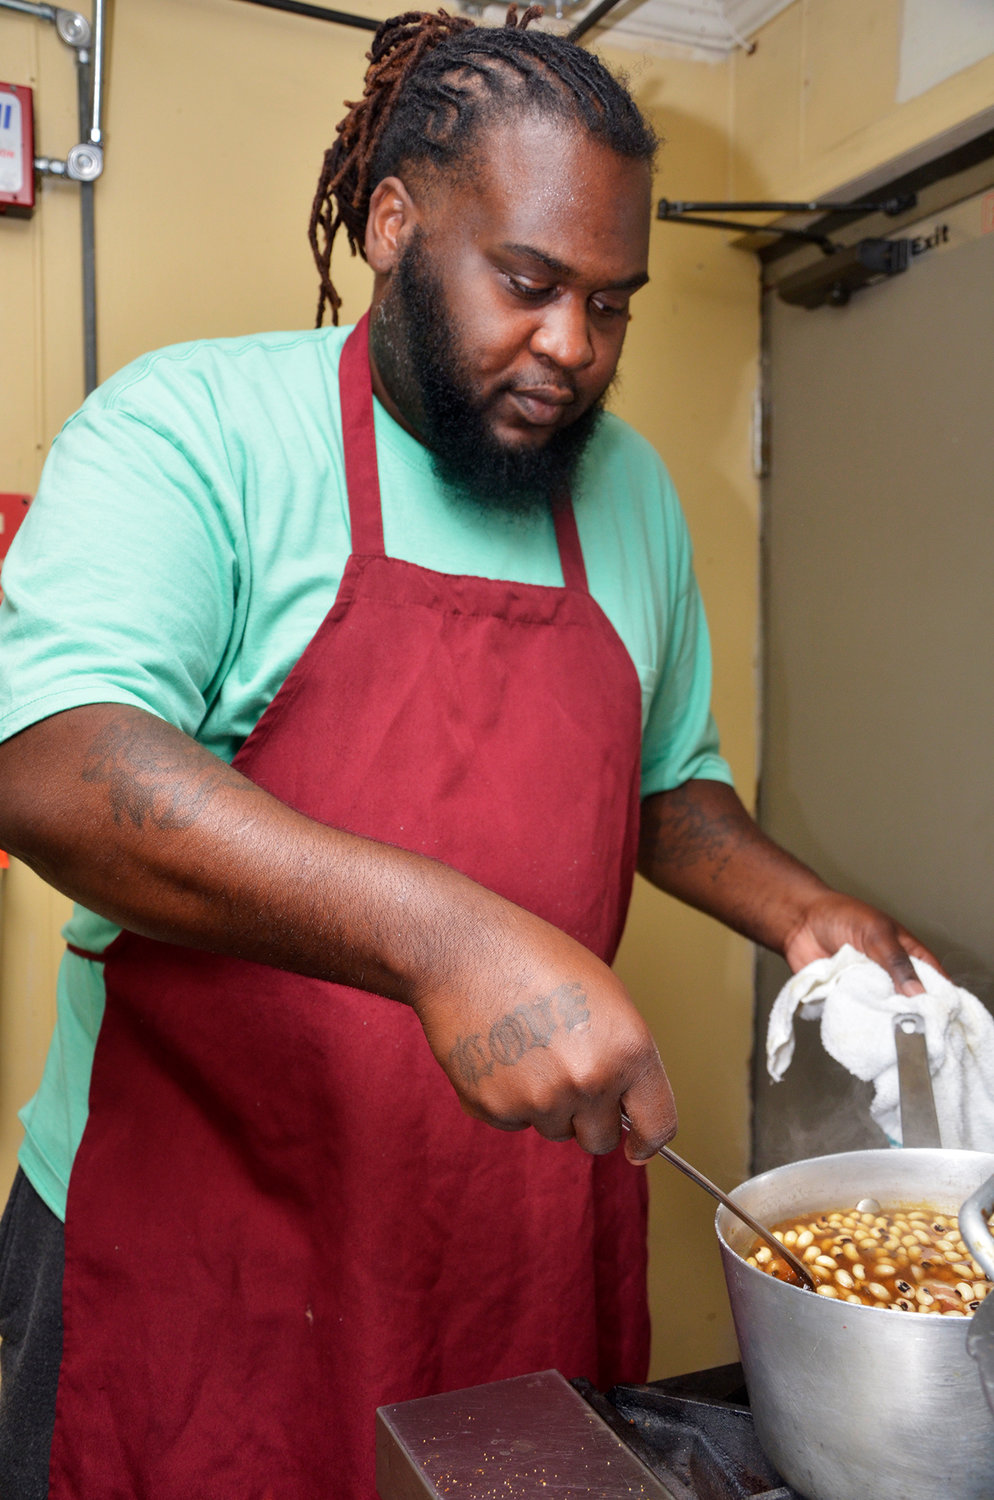 The 'Soul Roll' is a specialty of the house. Last Thursday, Andre Chaney, owner of the new A & I Chicken Shack, stirs the black-eyed peas that will be added to collards and potatoes to make the tasty dish. Every recipe is a family recipe.